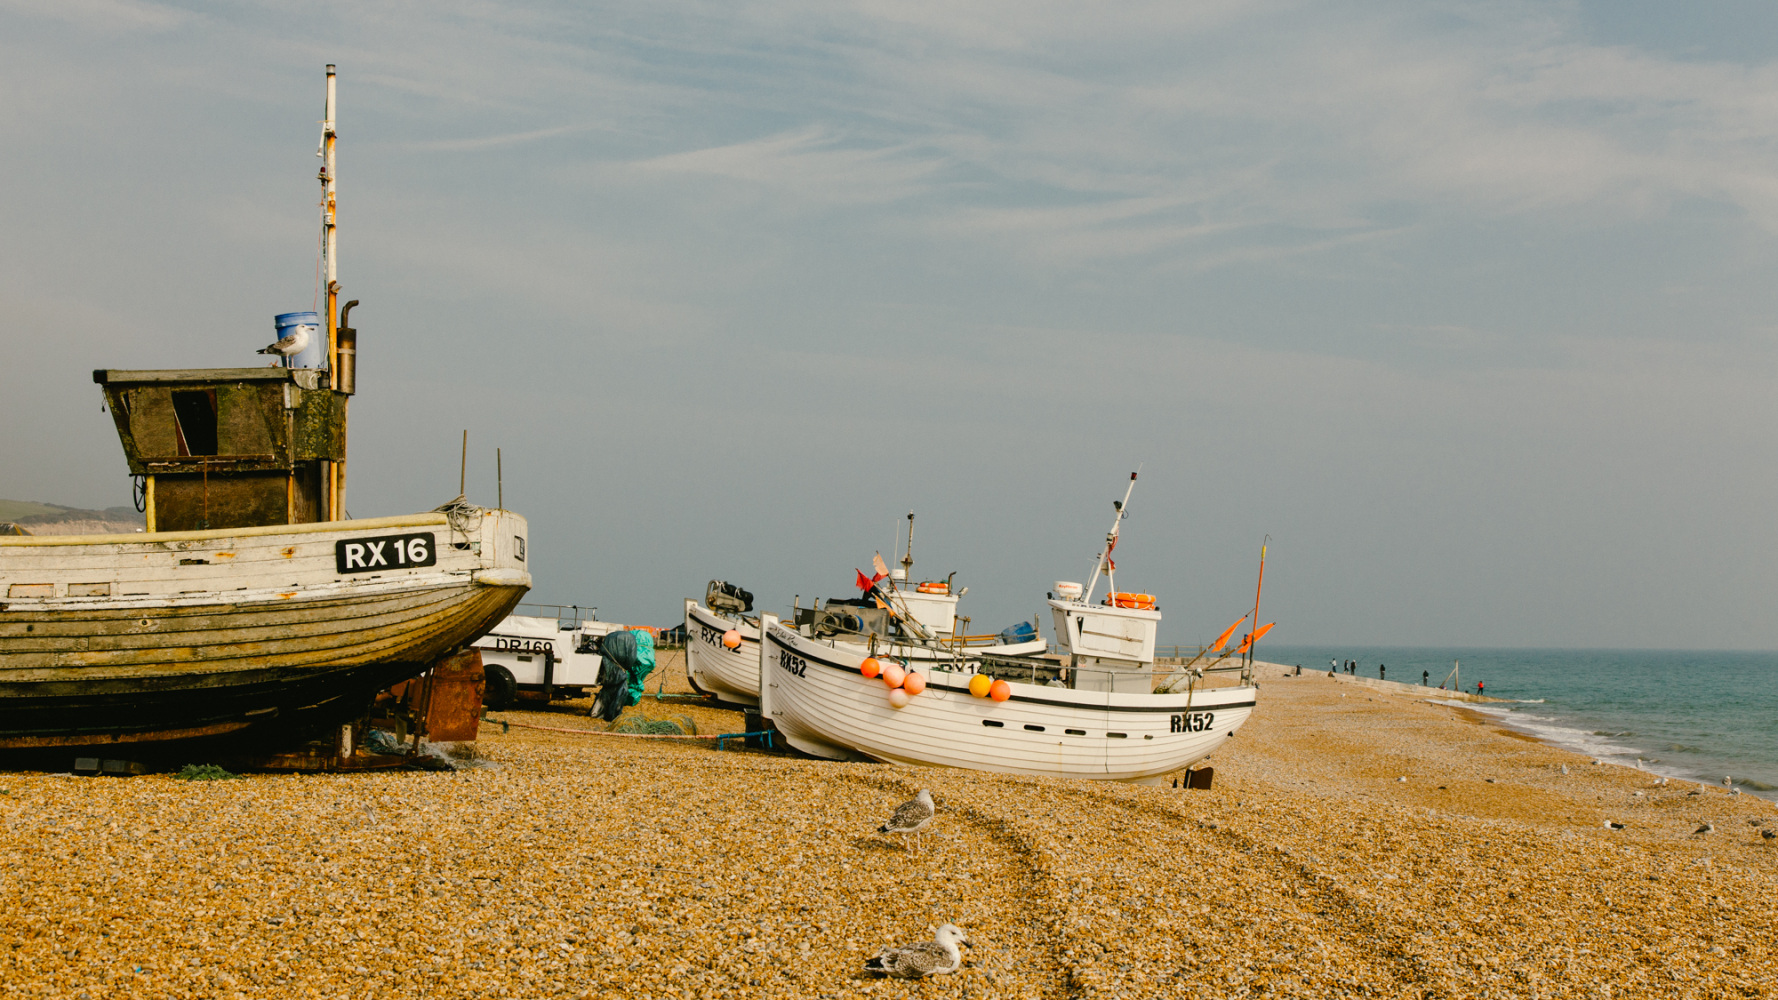 Fishing Boats on the pebble beach at Hastings